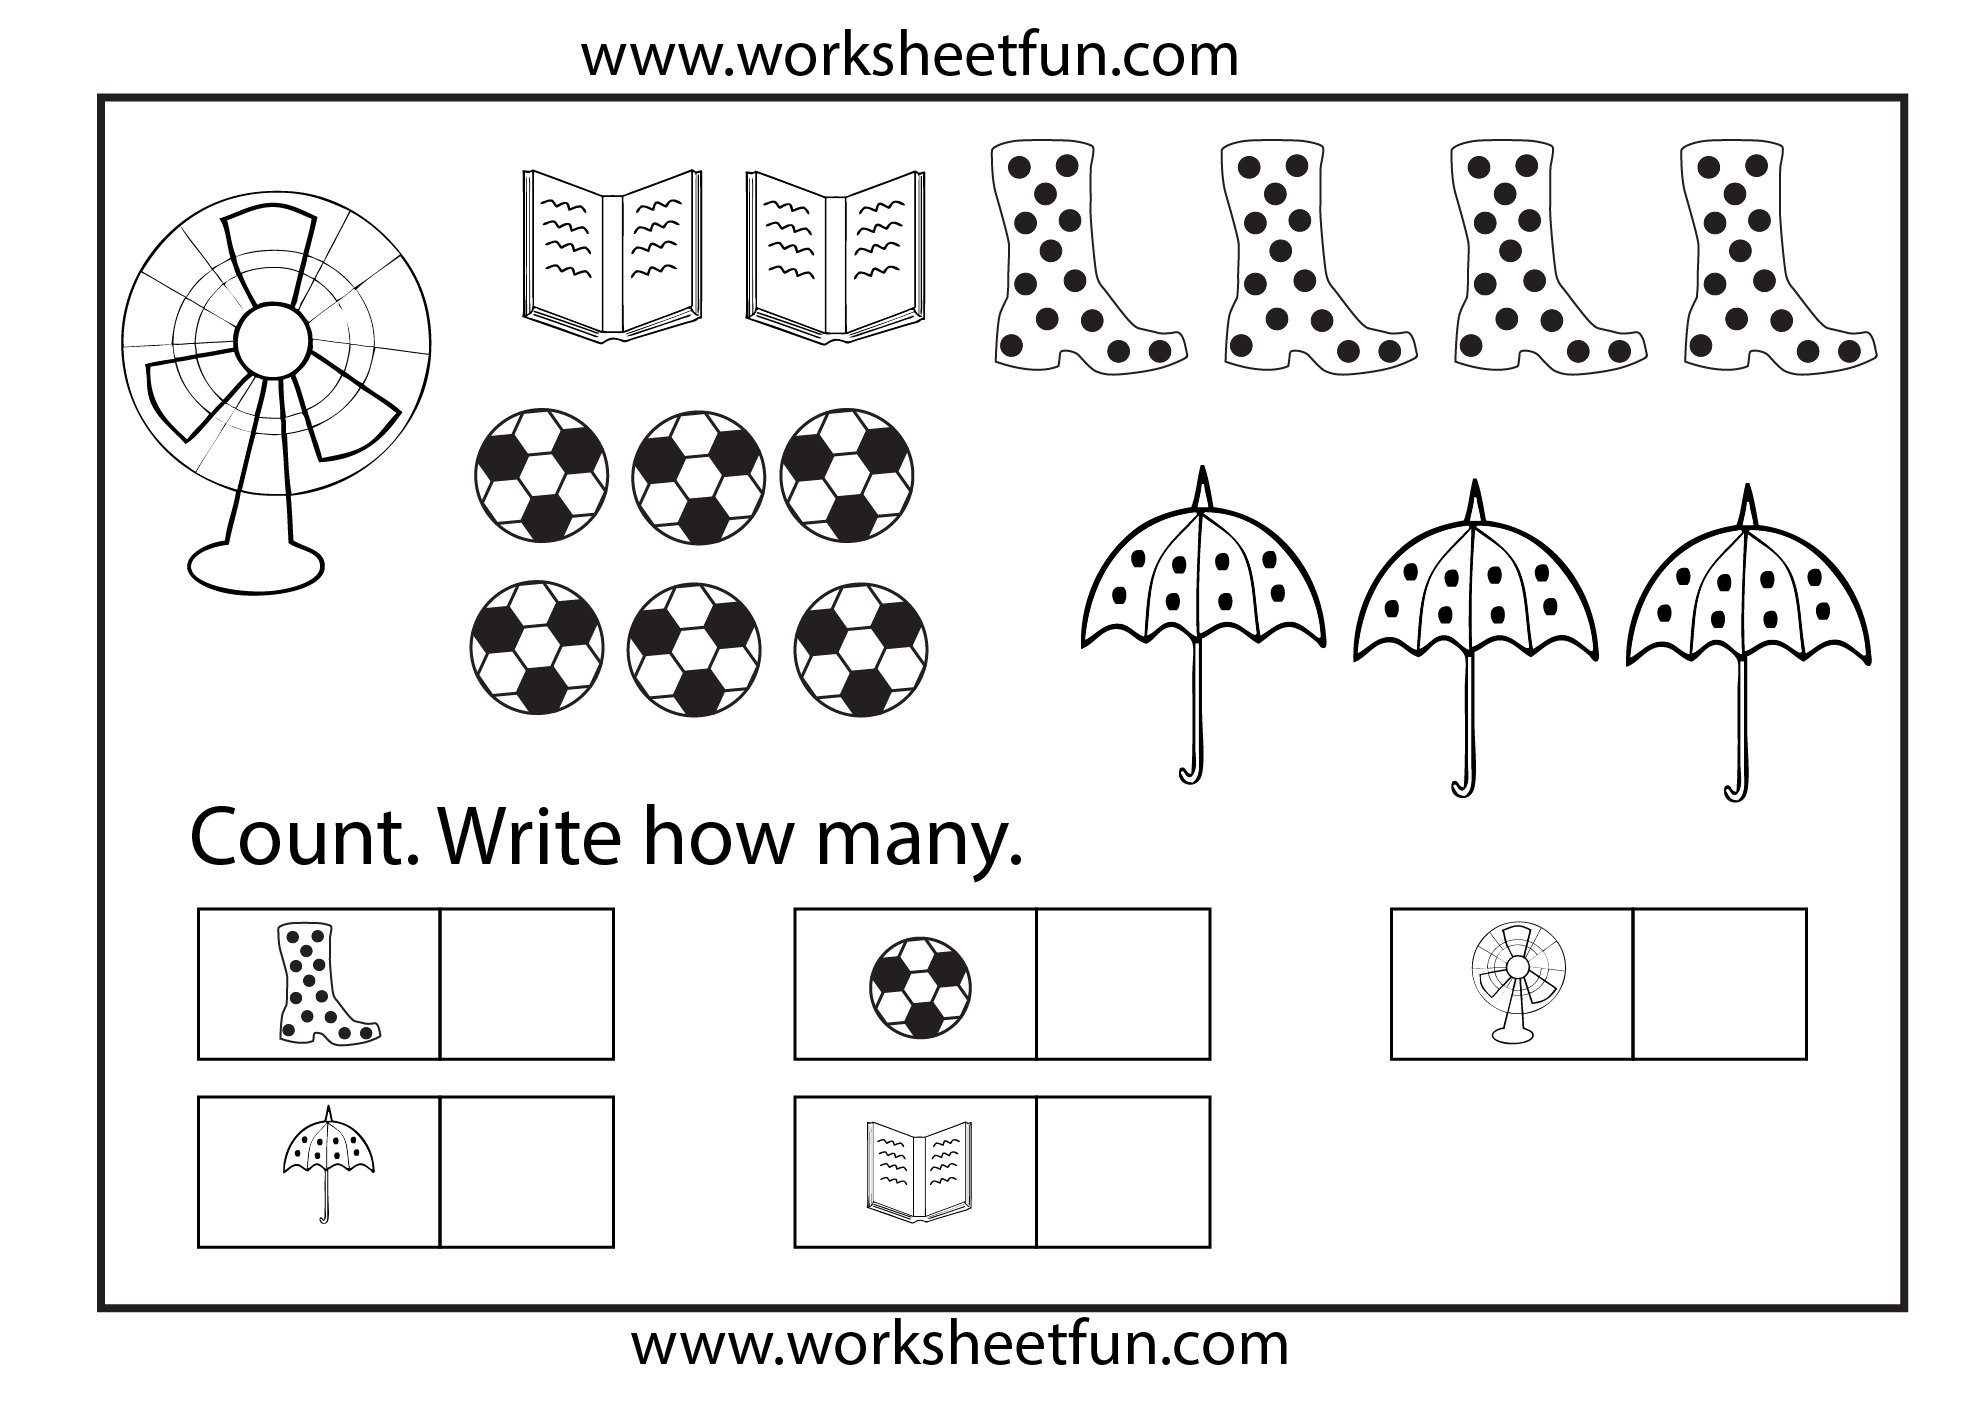 Worksheets Counting Numbers Worksheets 1000 images about ludovik on pinterest count counting to 20 and sons